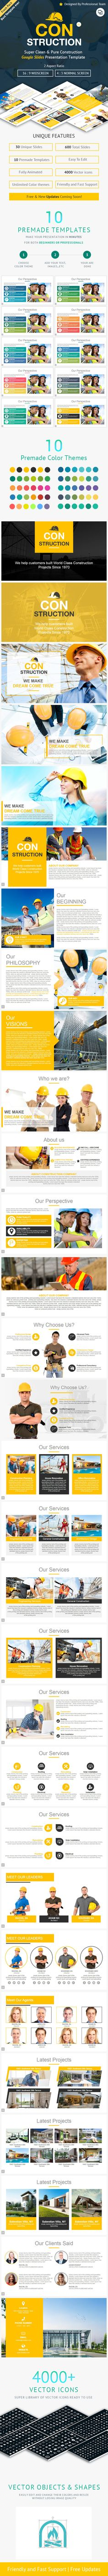 Construction #Google #Slides #Presentation Template - Google Slides Presentation #Templates Download here: https://graphicriver.net/item/construction-google-slides-presentation-template/17178458?ref=alena994